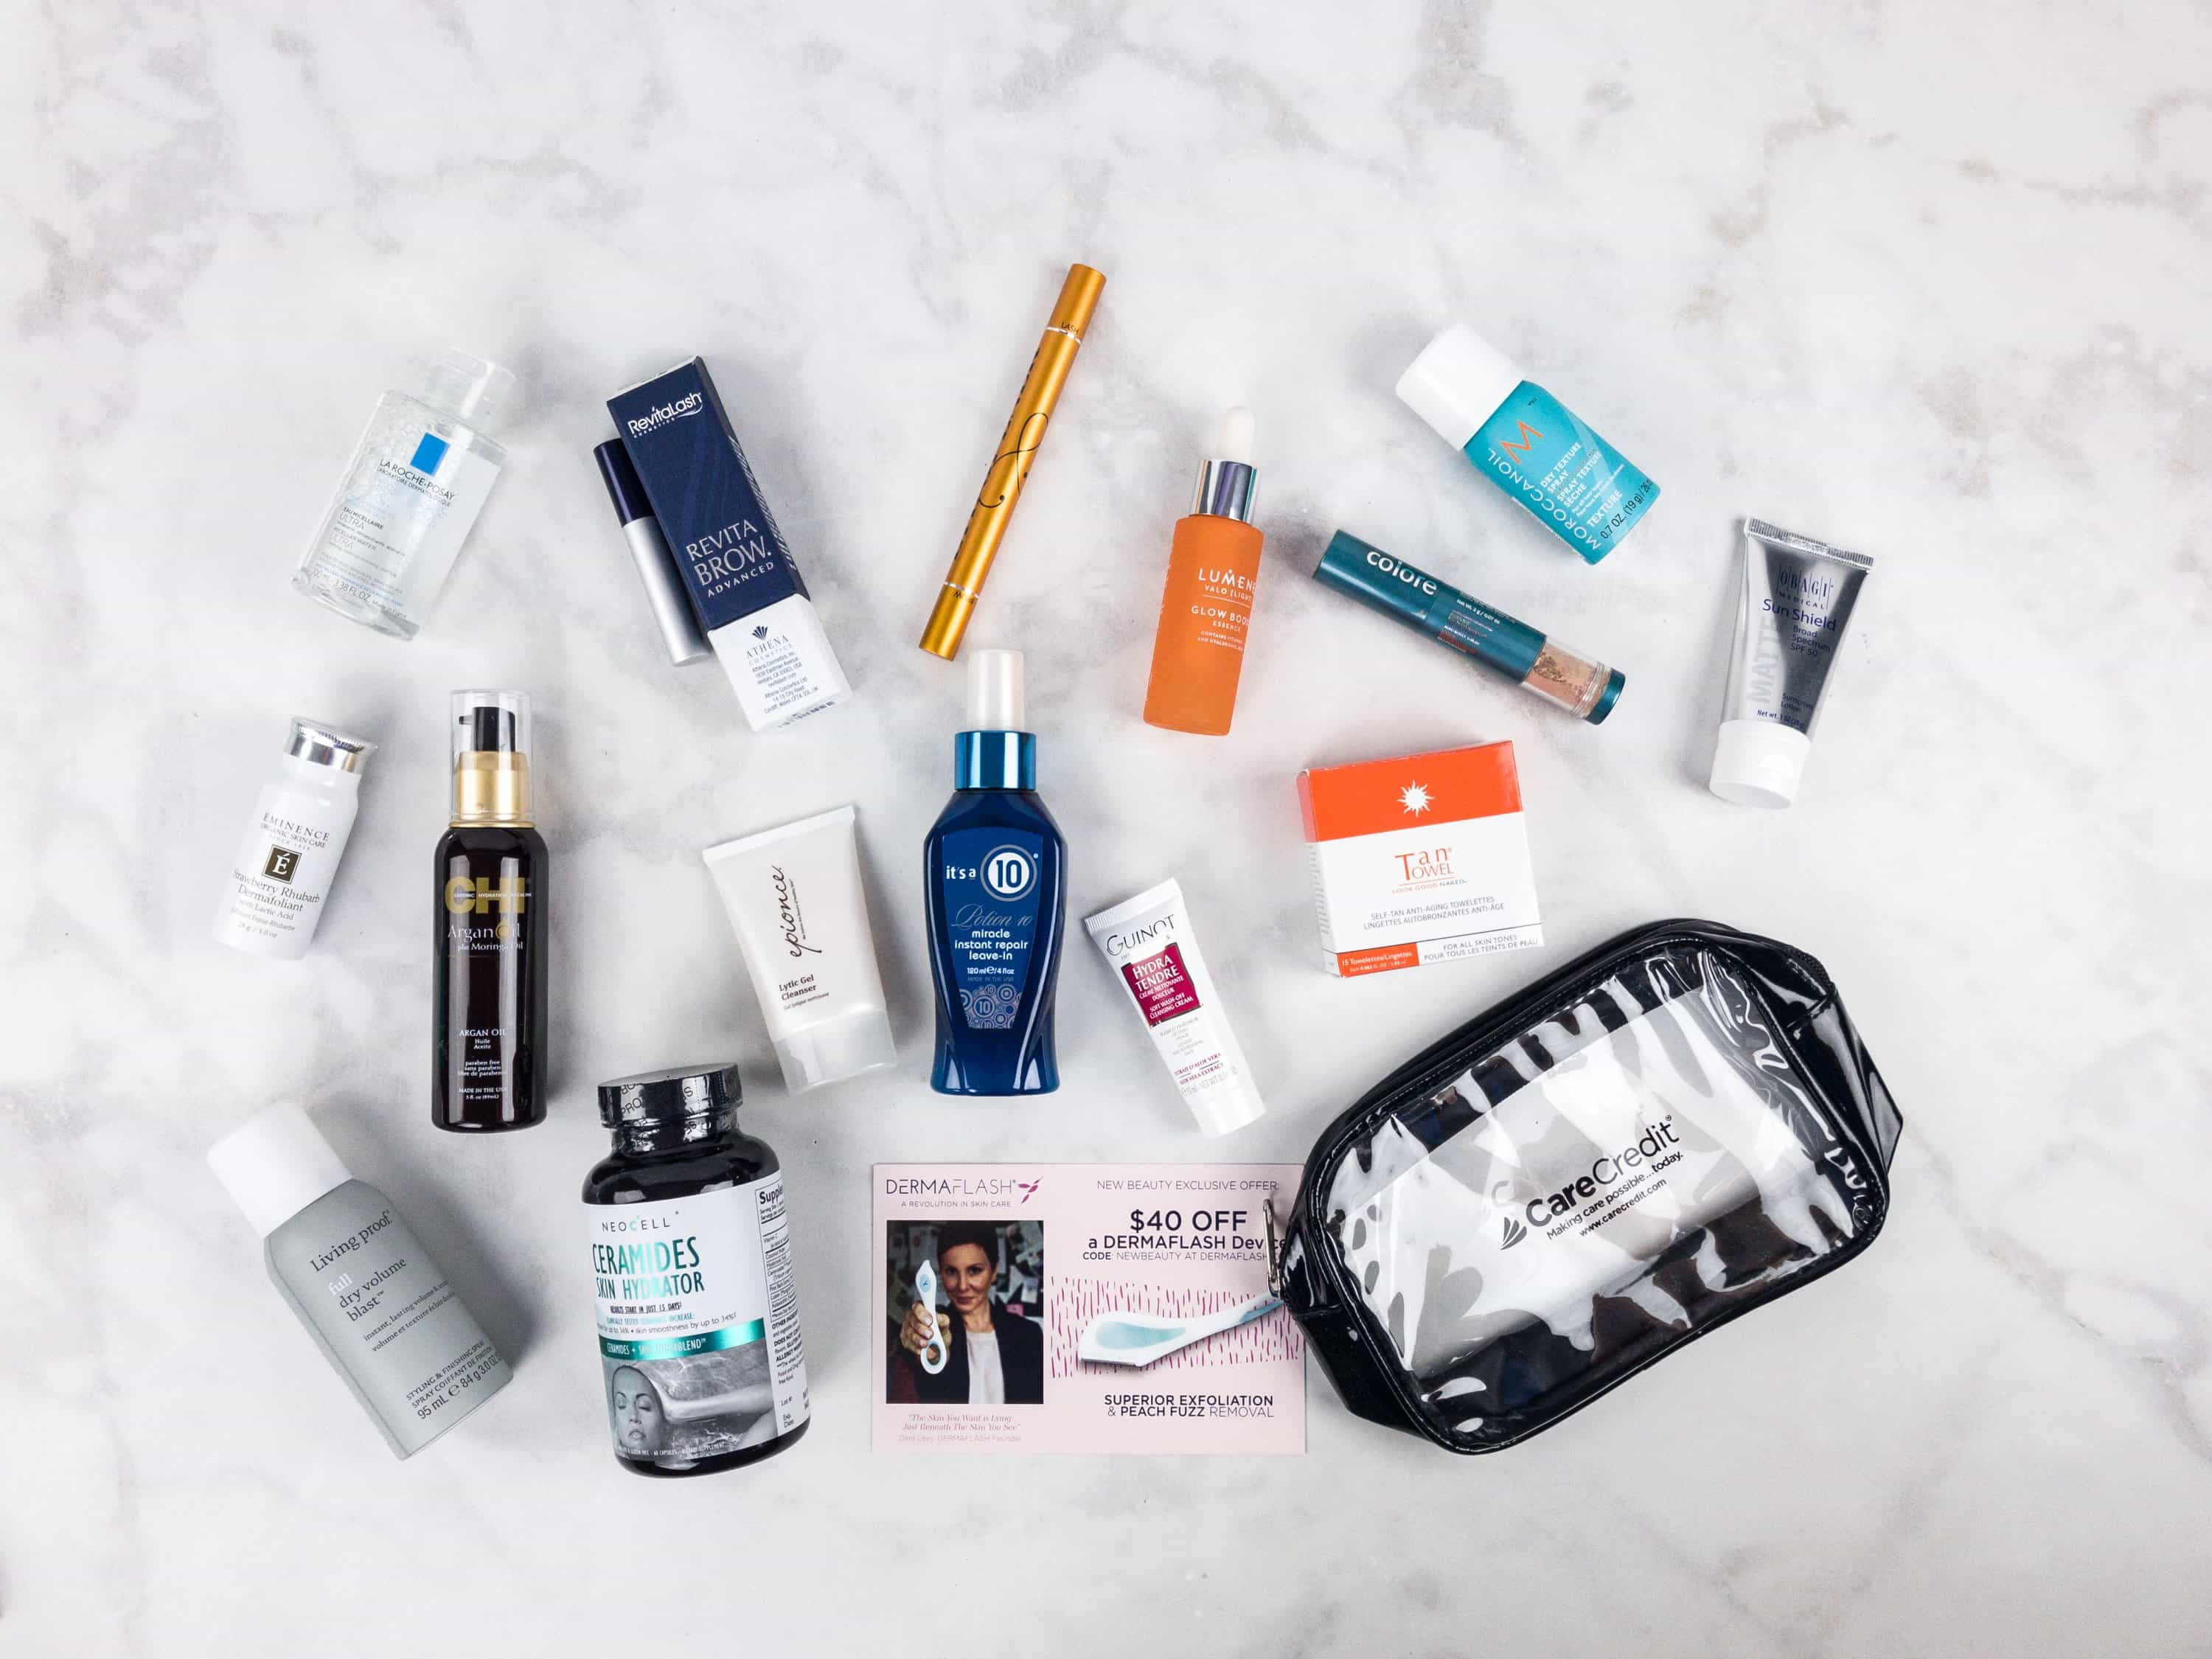 Beauty Choice Awards 2017 Limited Edition Box Review